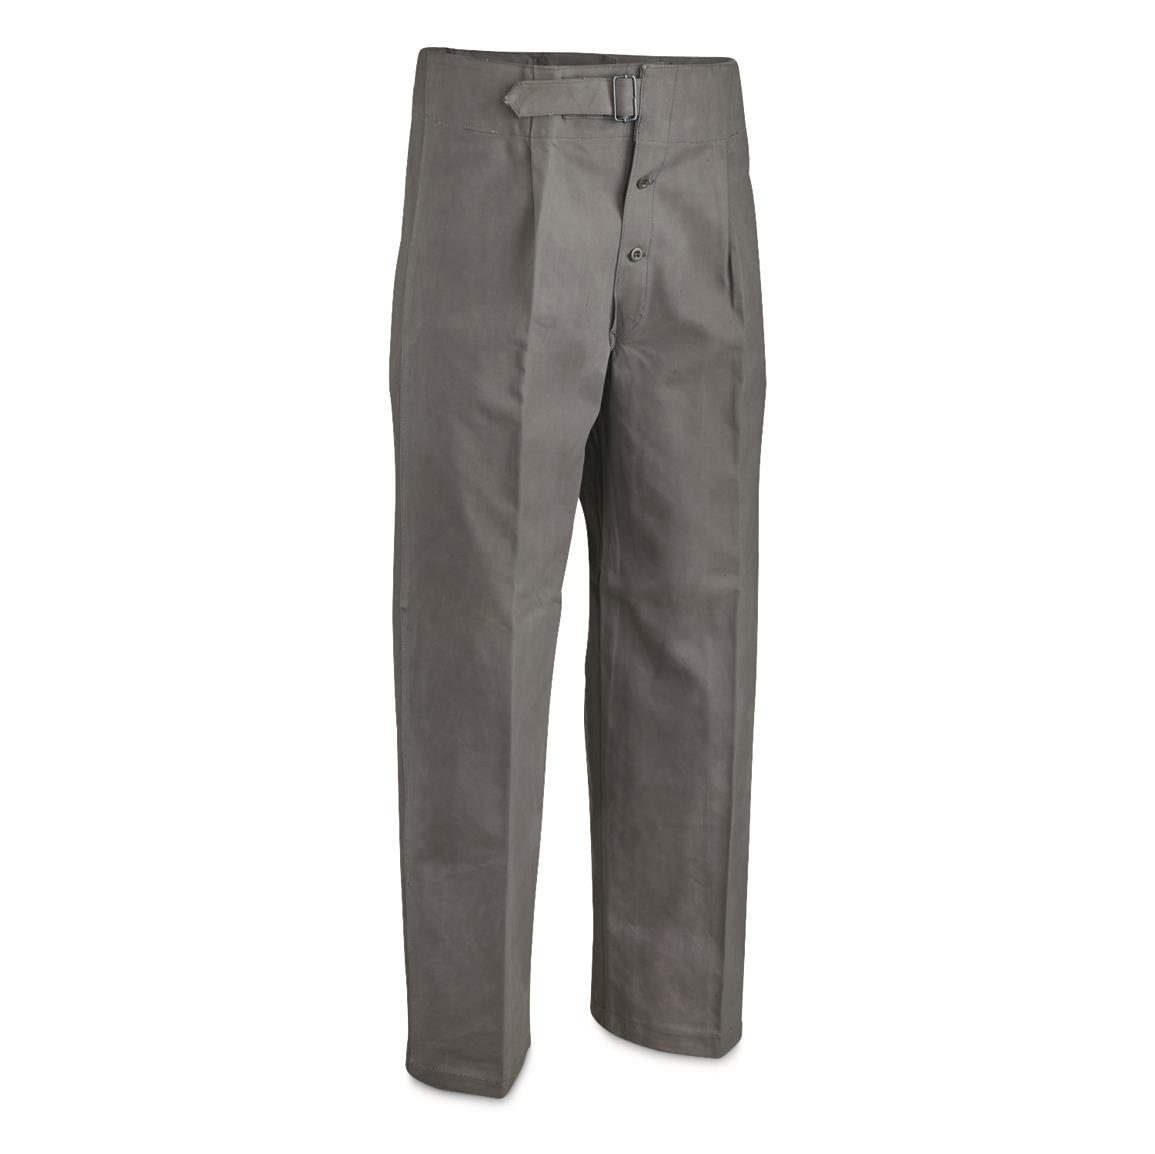 Italian Navy Surplus Waterproof Overpants, New, Gray